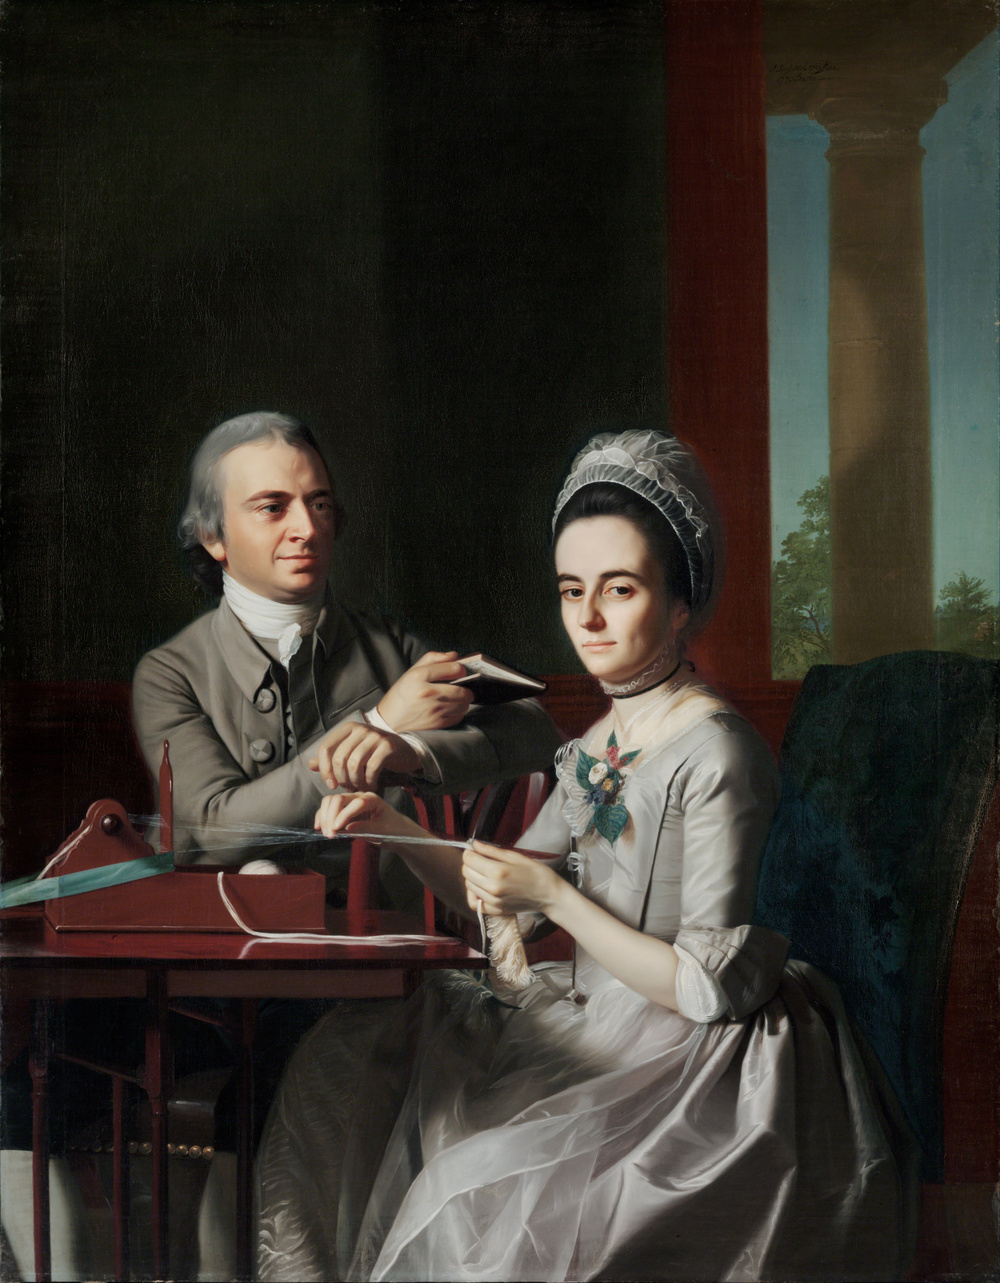 John_Singleton_Copley,_American_-_Portrait_of_Mr._and_Mrs._Thomas_Mifflin_(Sarah_Morris)_-_Google_Art_Project.jpg